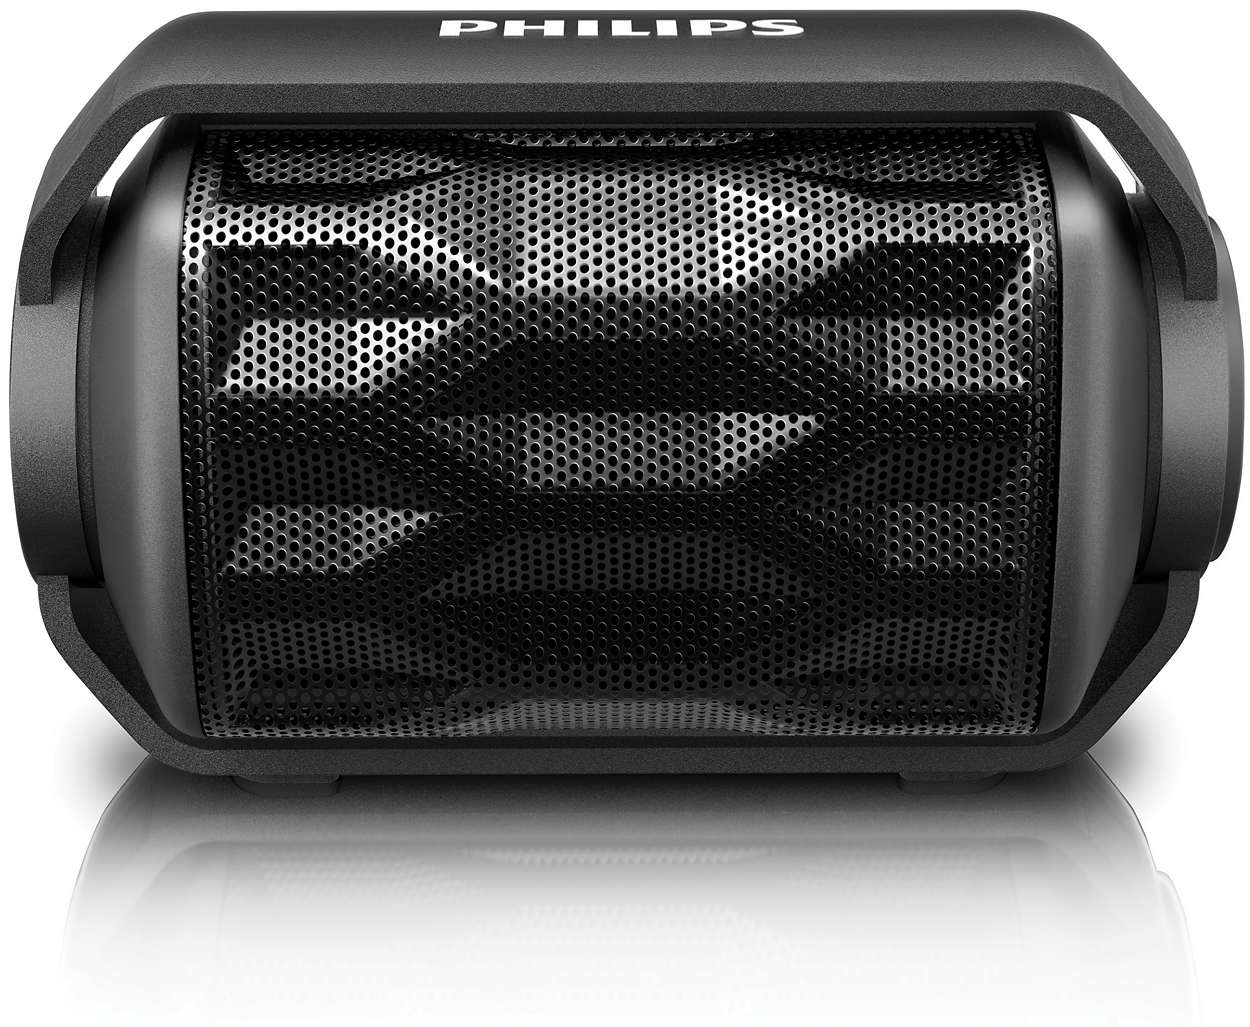 wireless portable speaker bt2200bf 27 philips. Black Bedroom Furniture Sets. Home Design Ideas